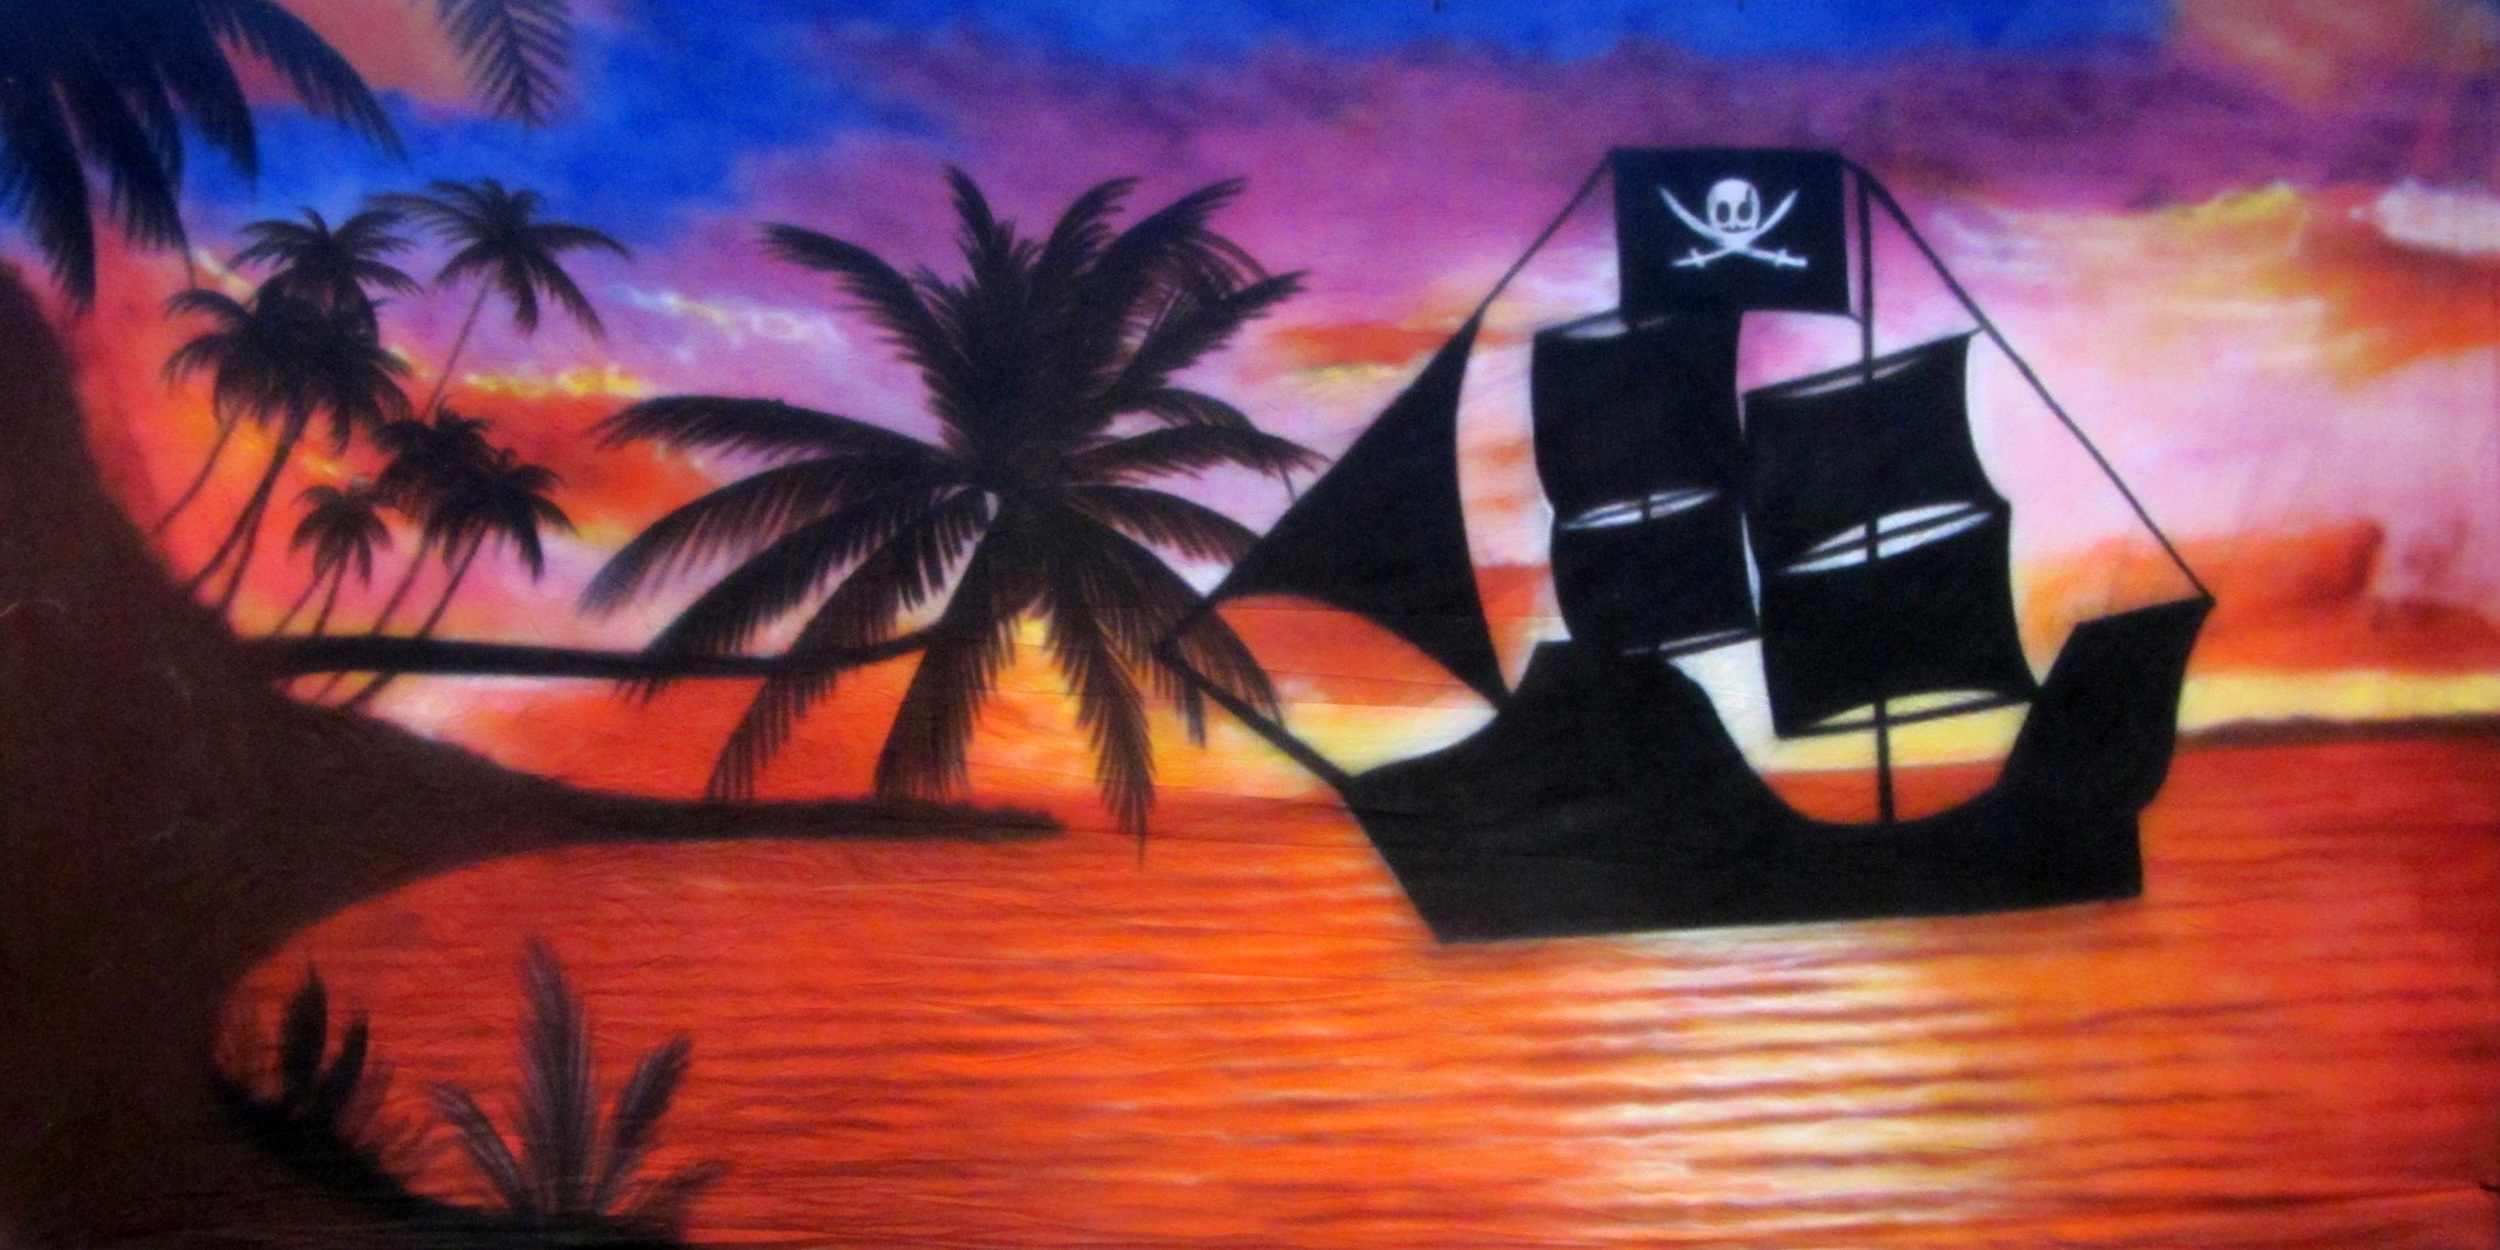 backdrop for hire - Pirate.jpg